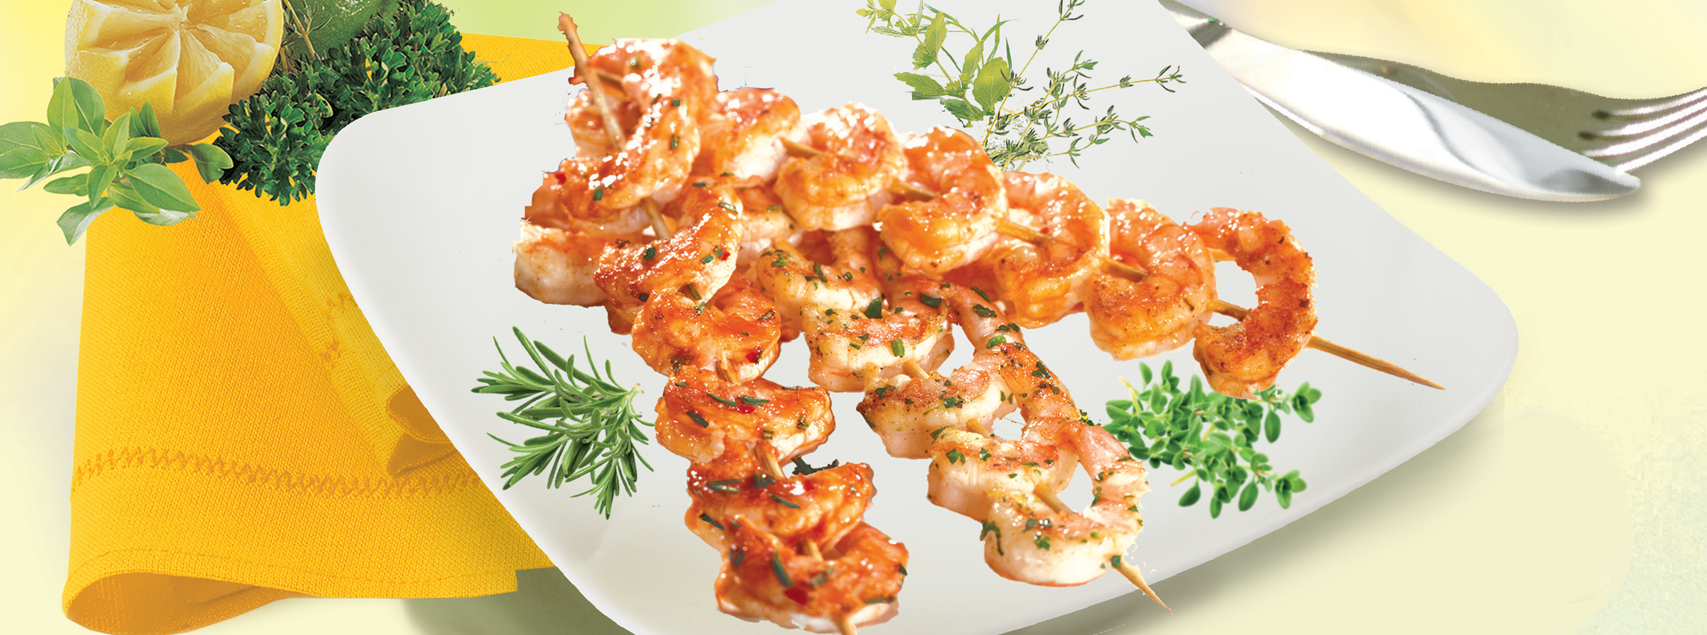 Marinated shrimps skewers